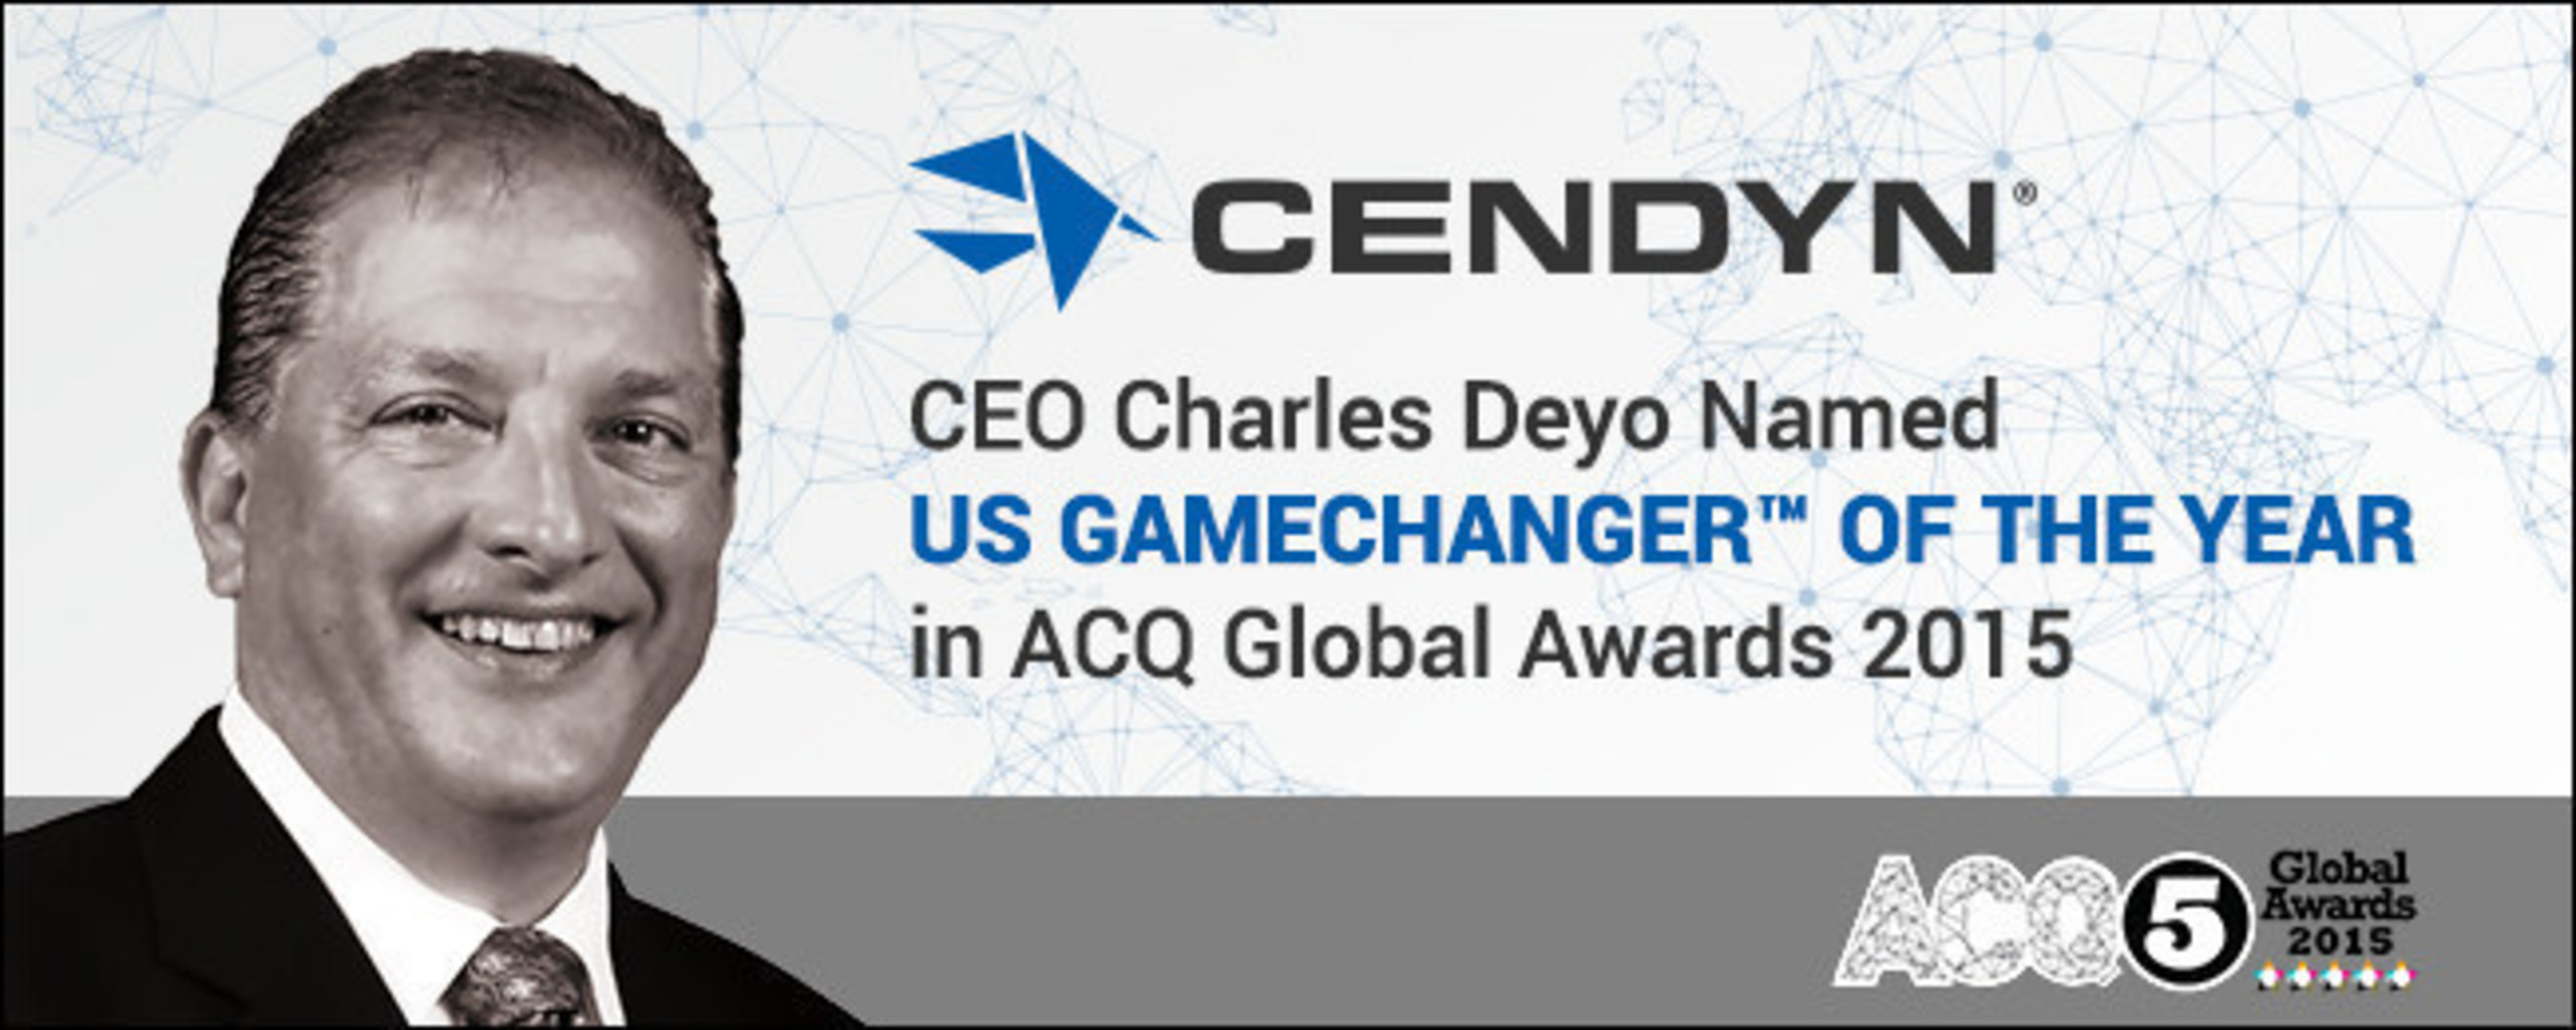 Cendyn CEO Charles Deyo Named US Gamechanger™ of the Year in ACQ Global Awards 2015